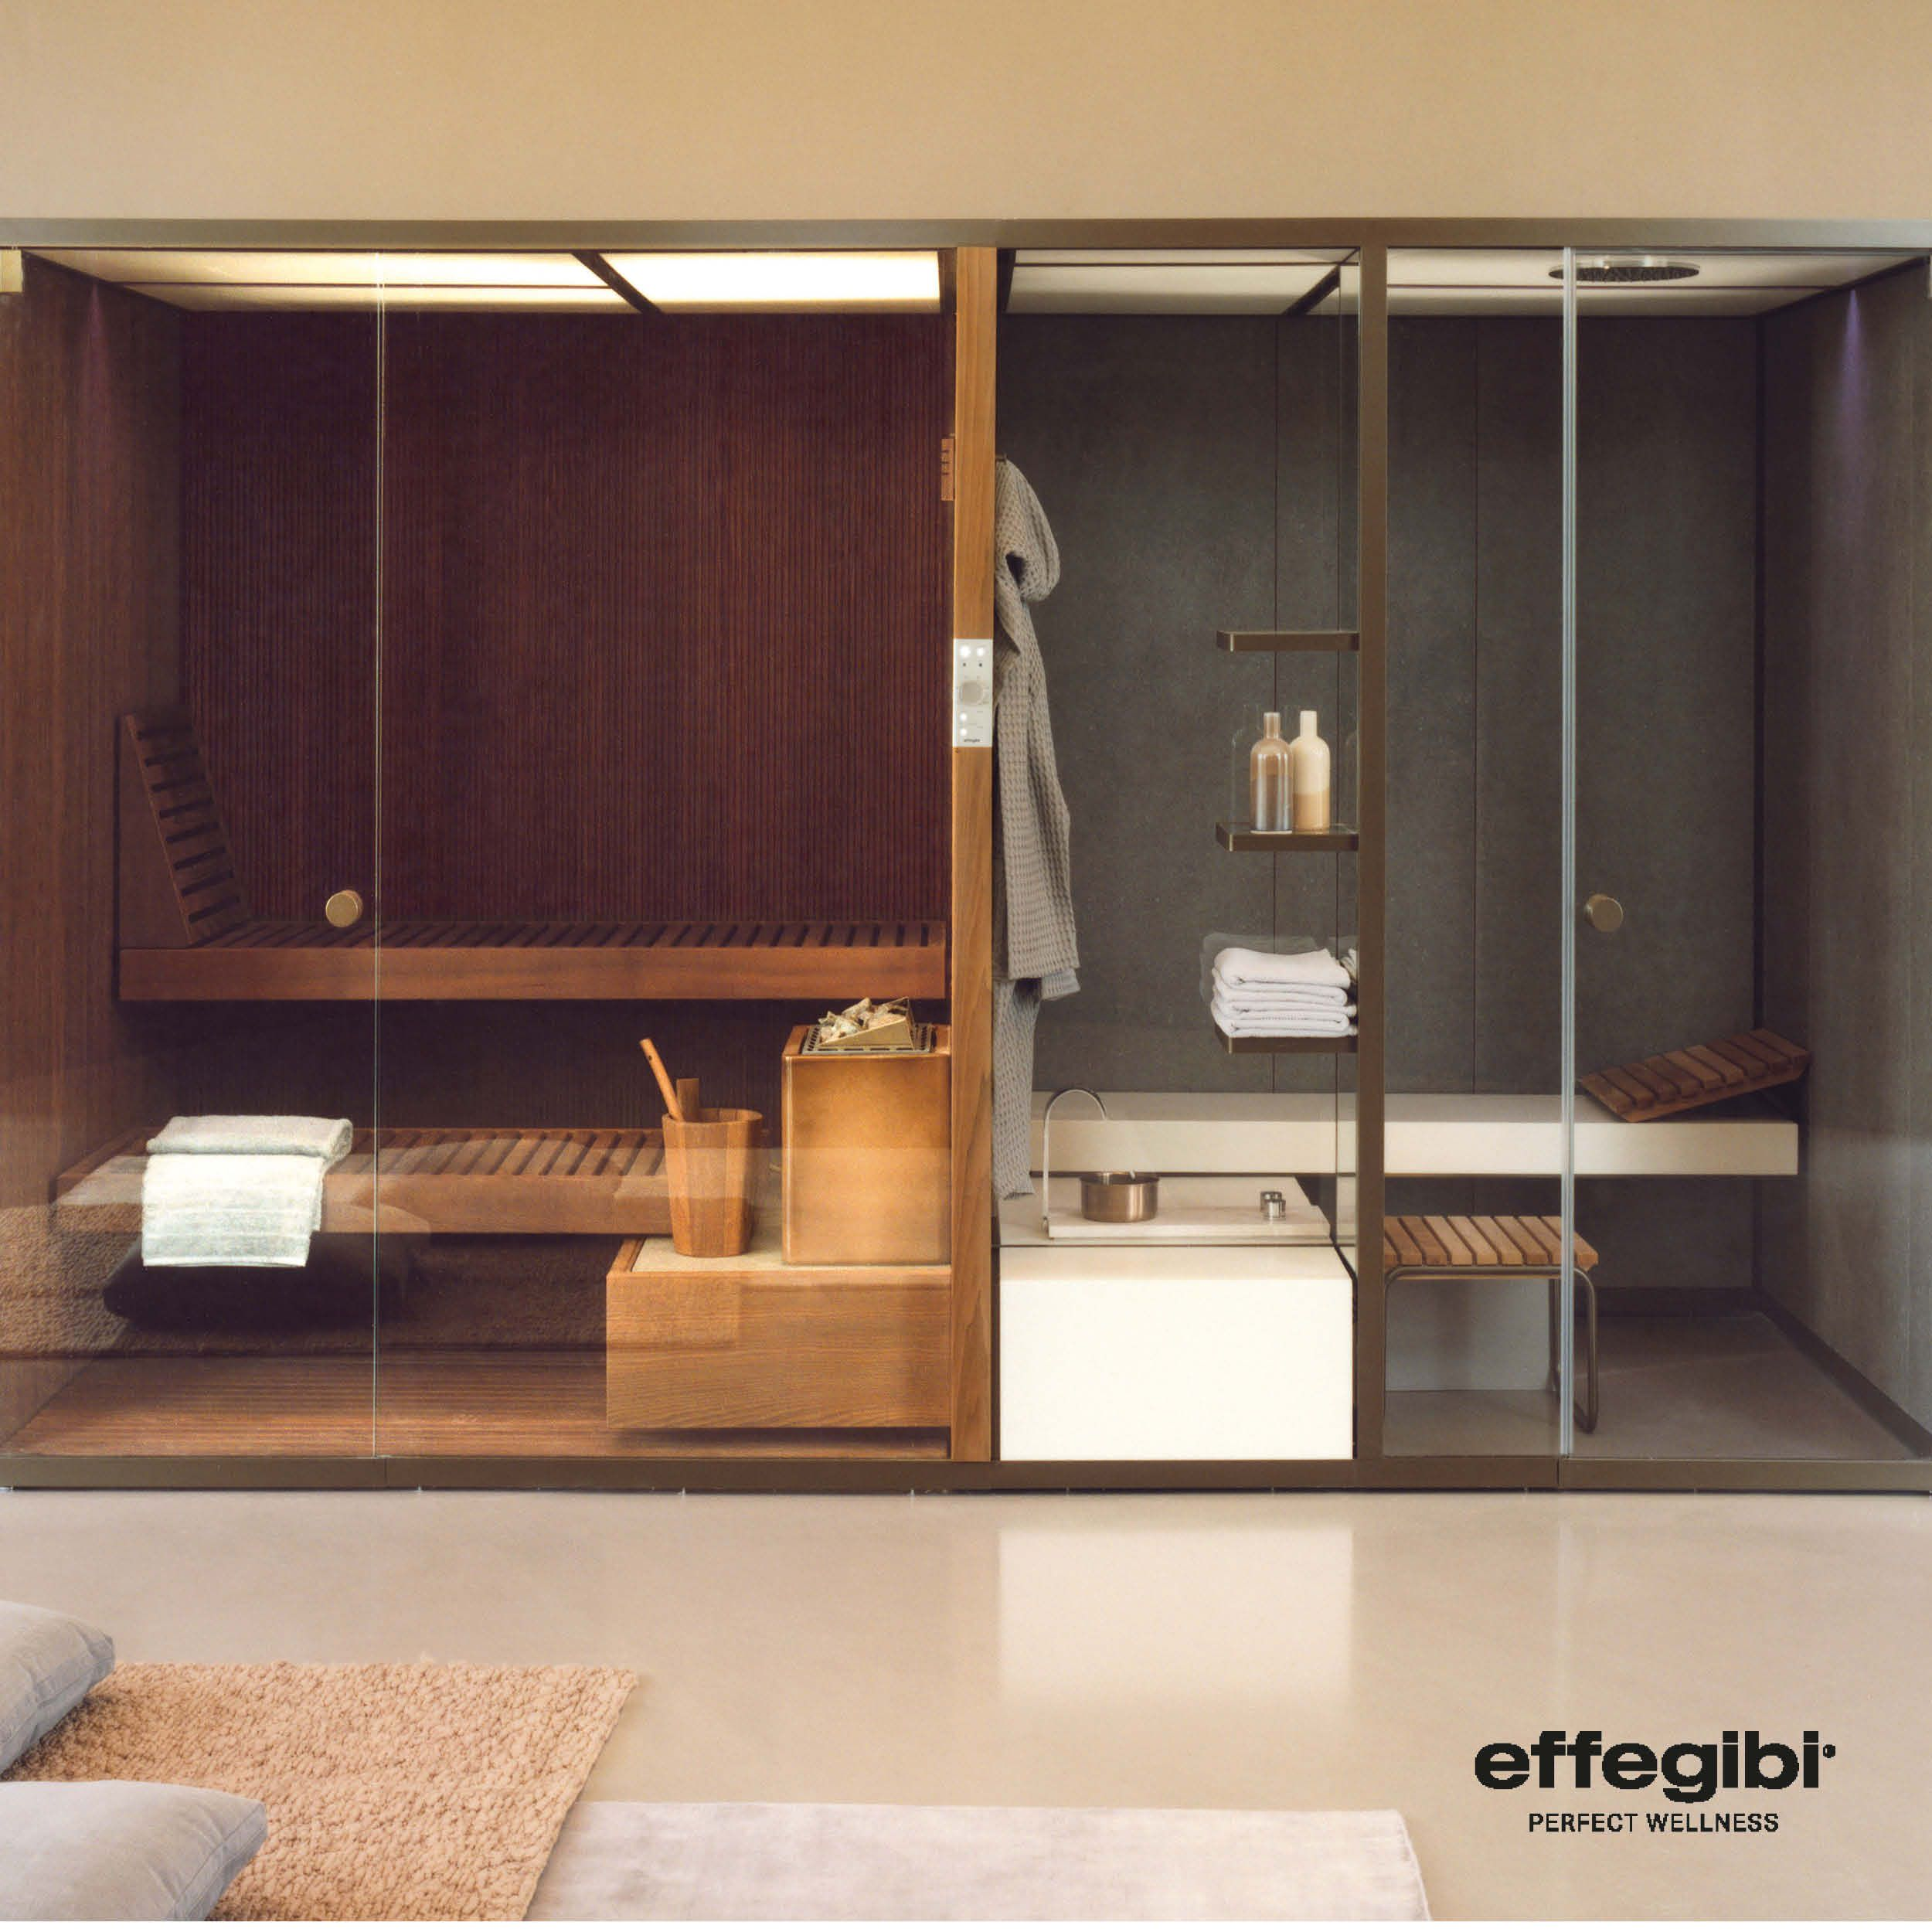 Saunas Perth Pin By Mich Lhasa On Home Perth Pinterest